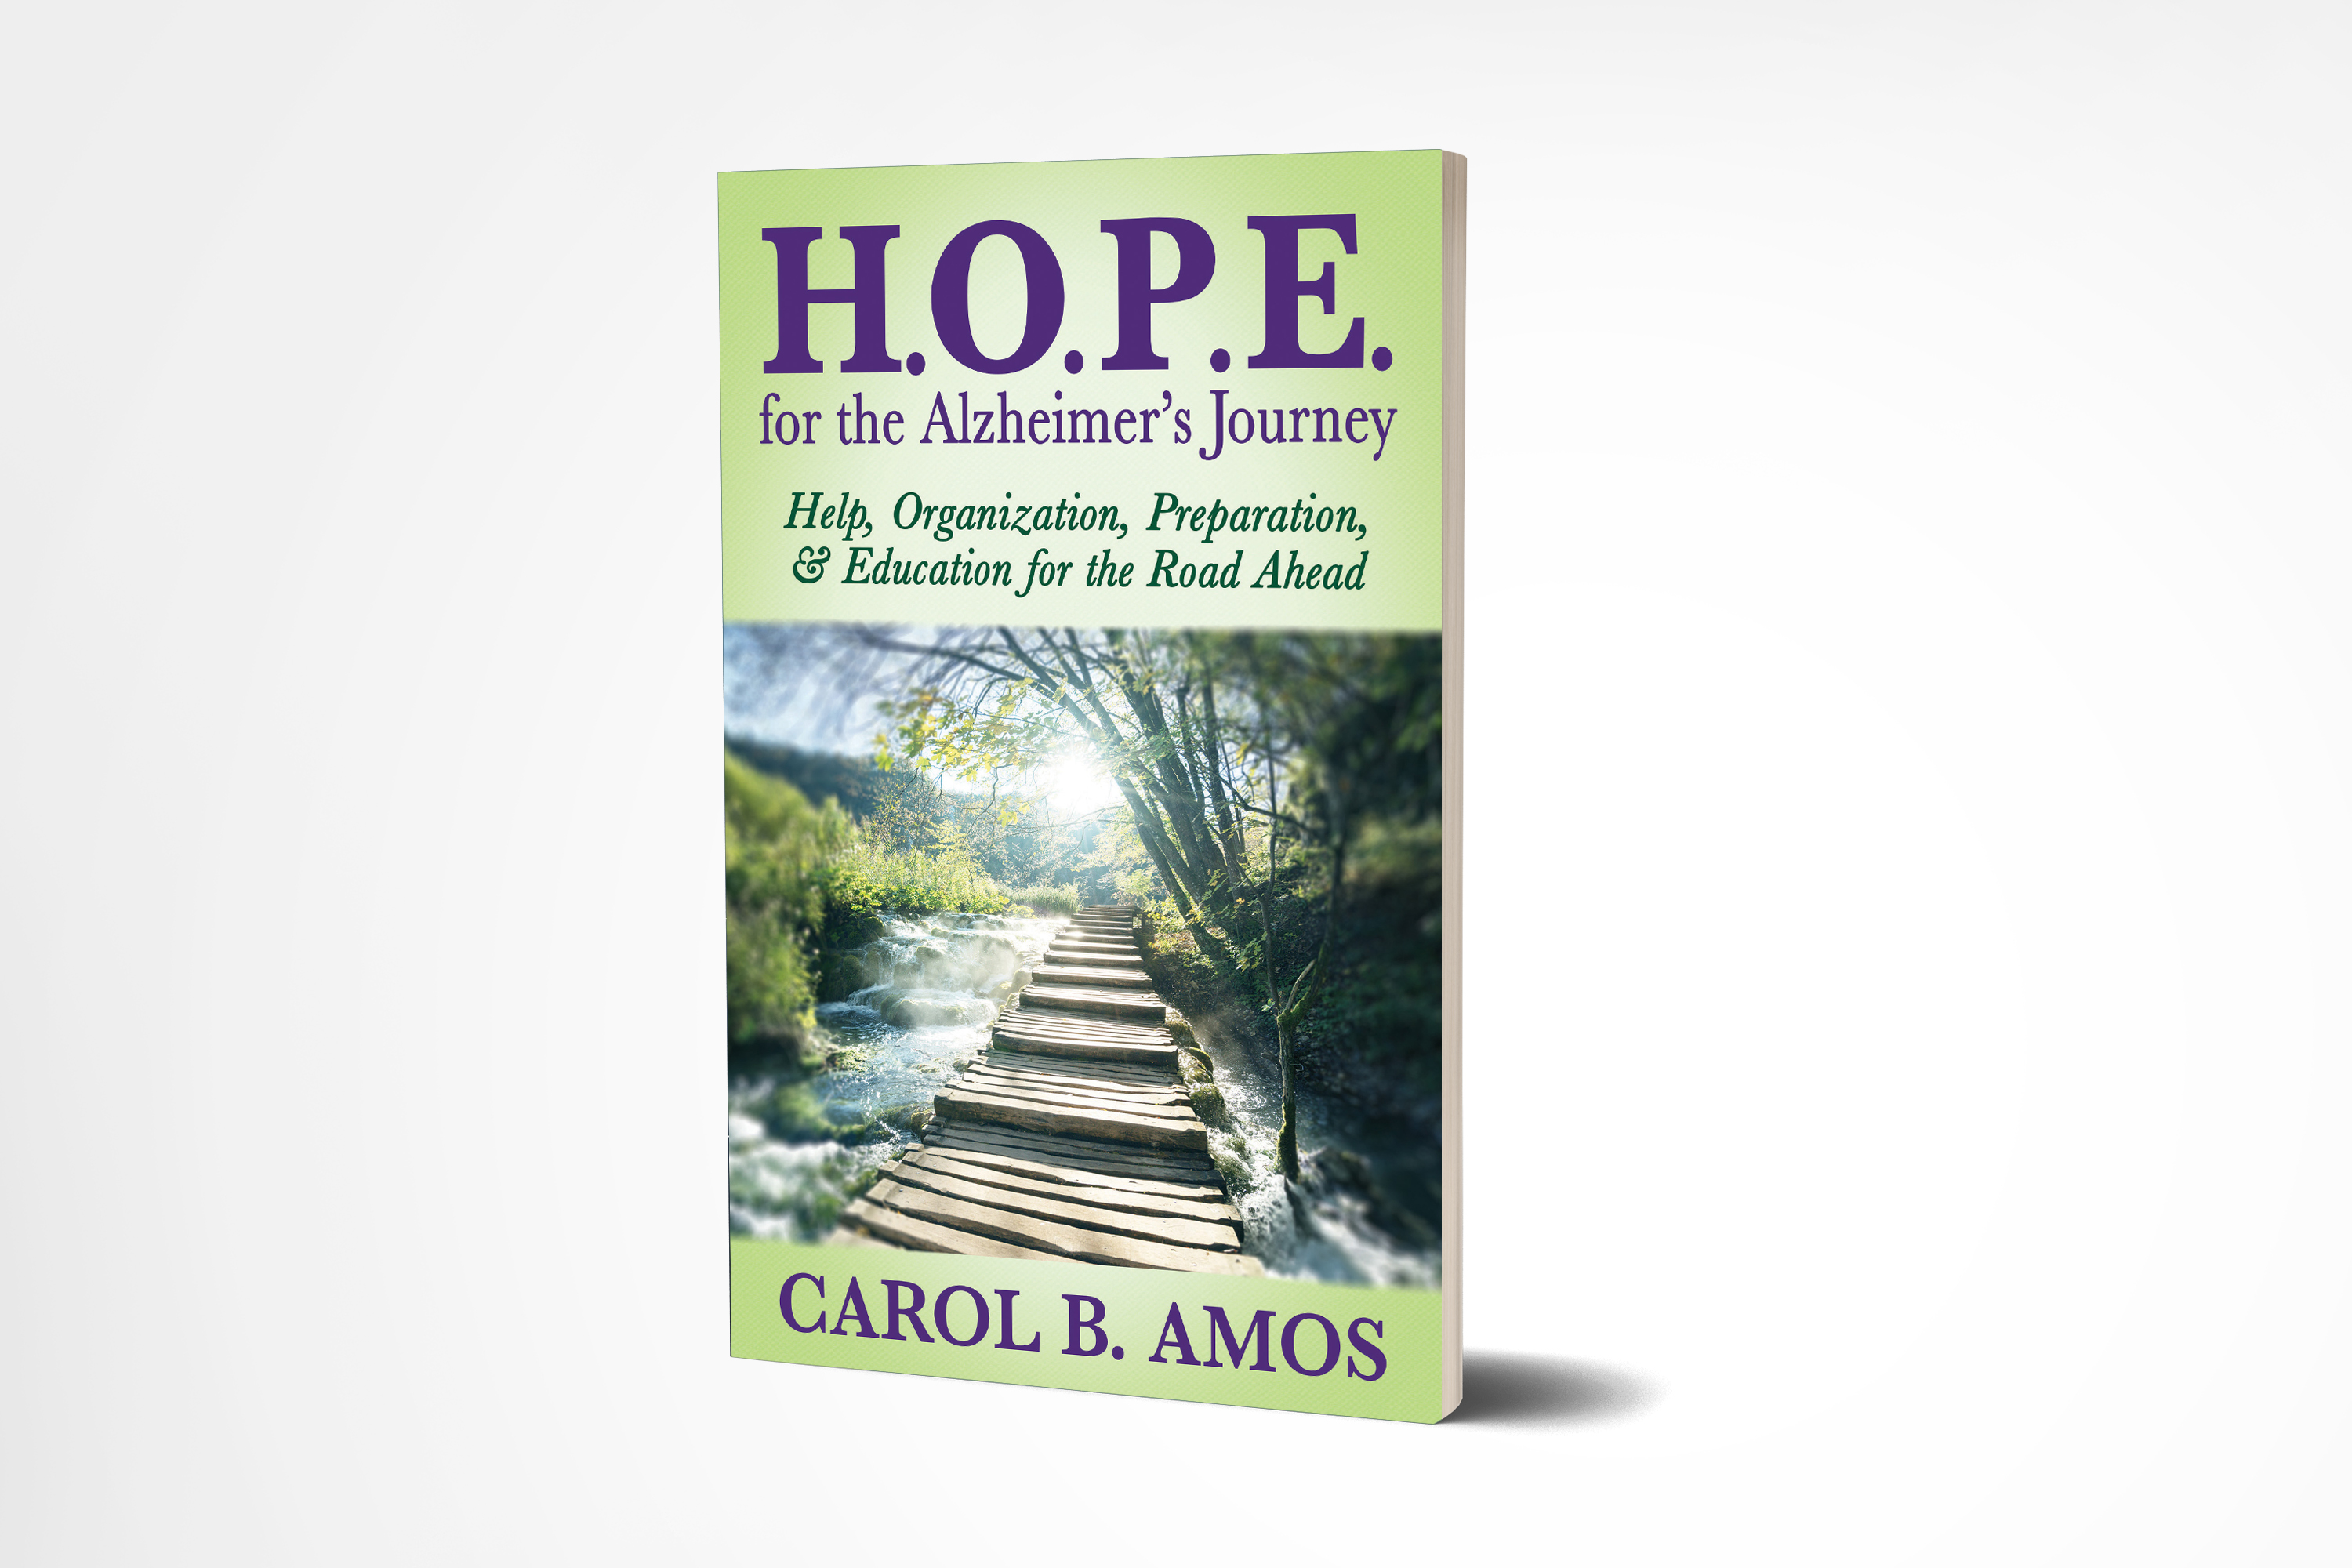 Cover for author Carol Amos's book HOPE for Alzheimer's Journey